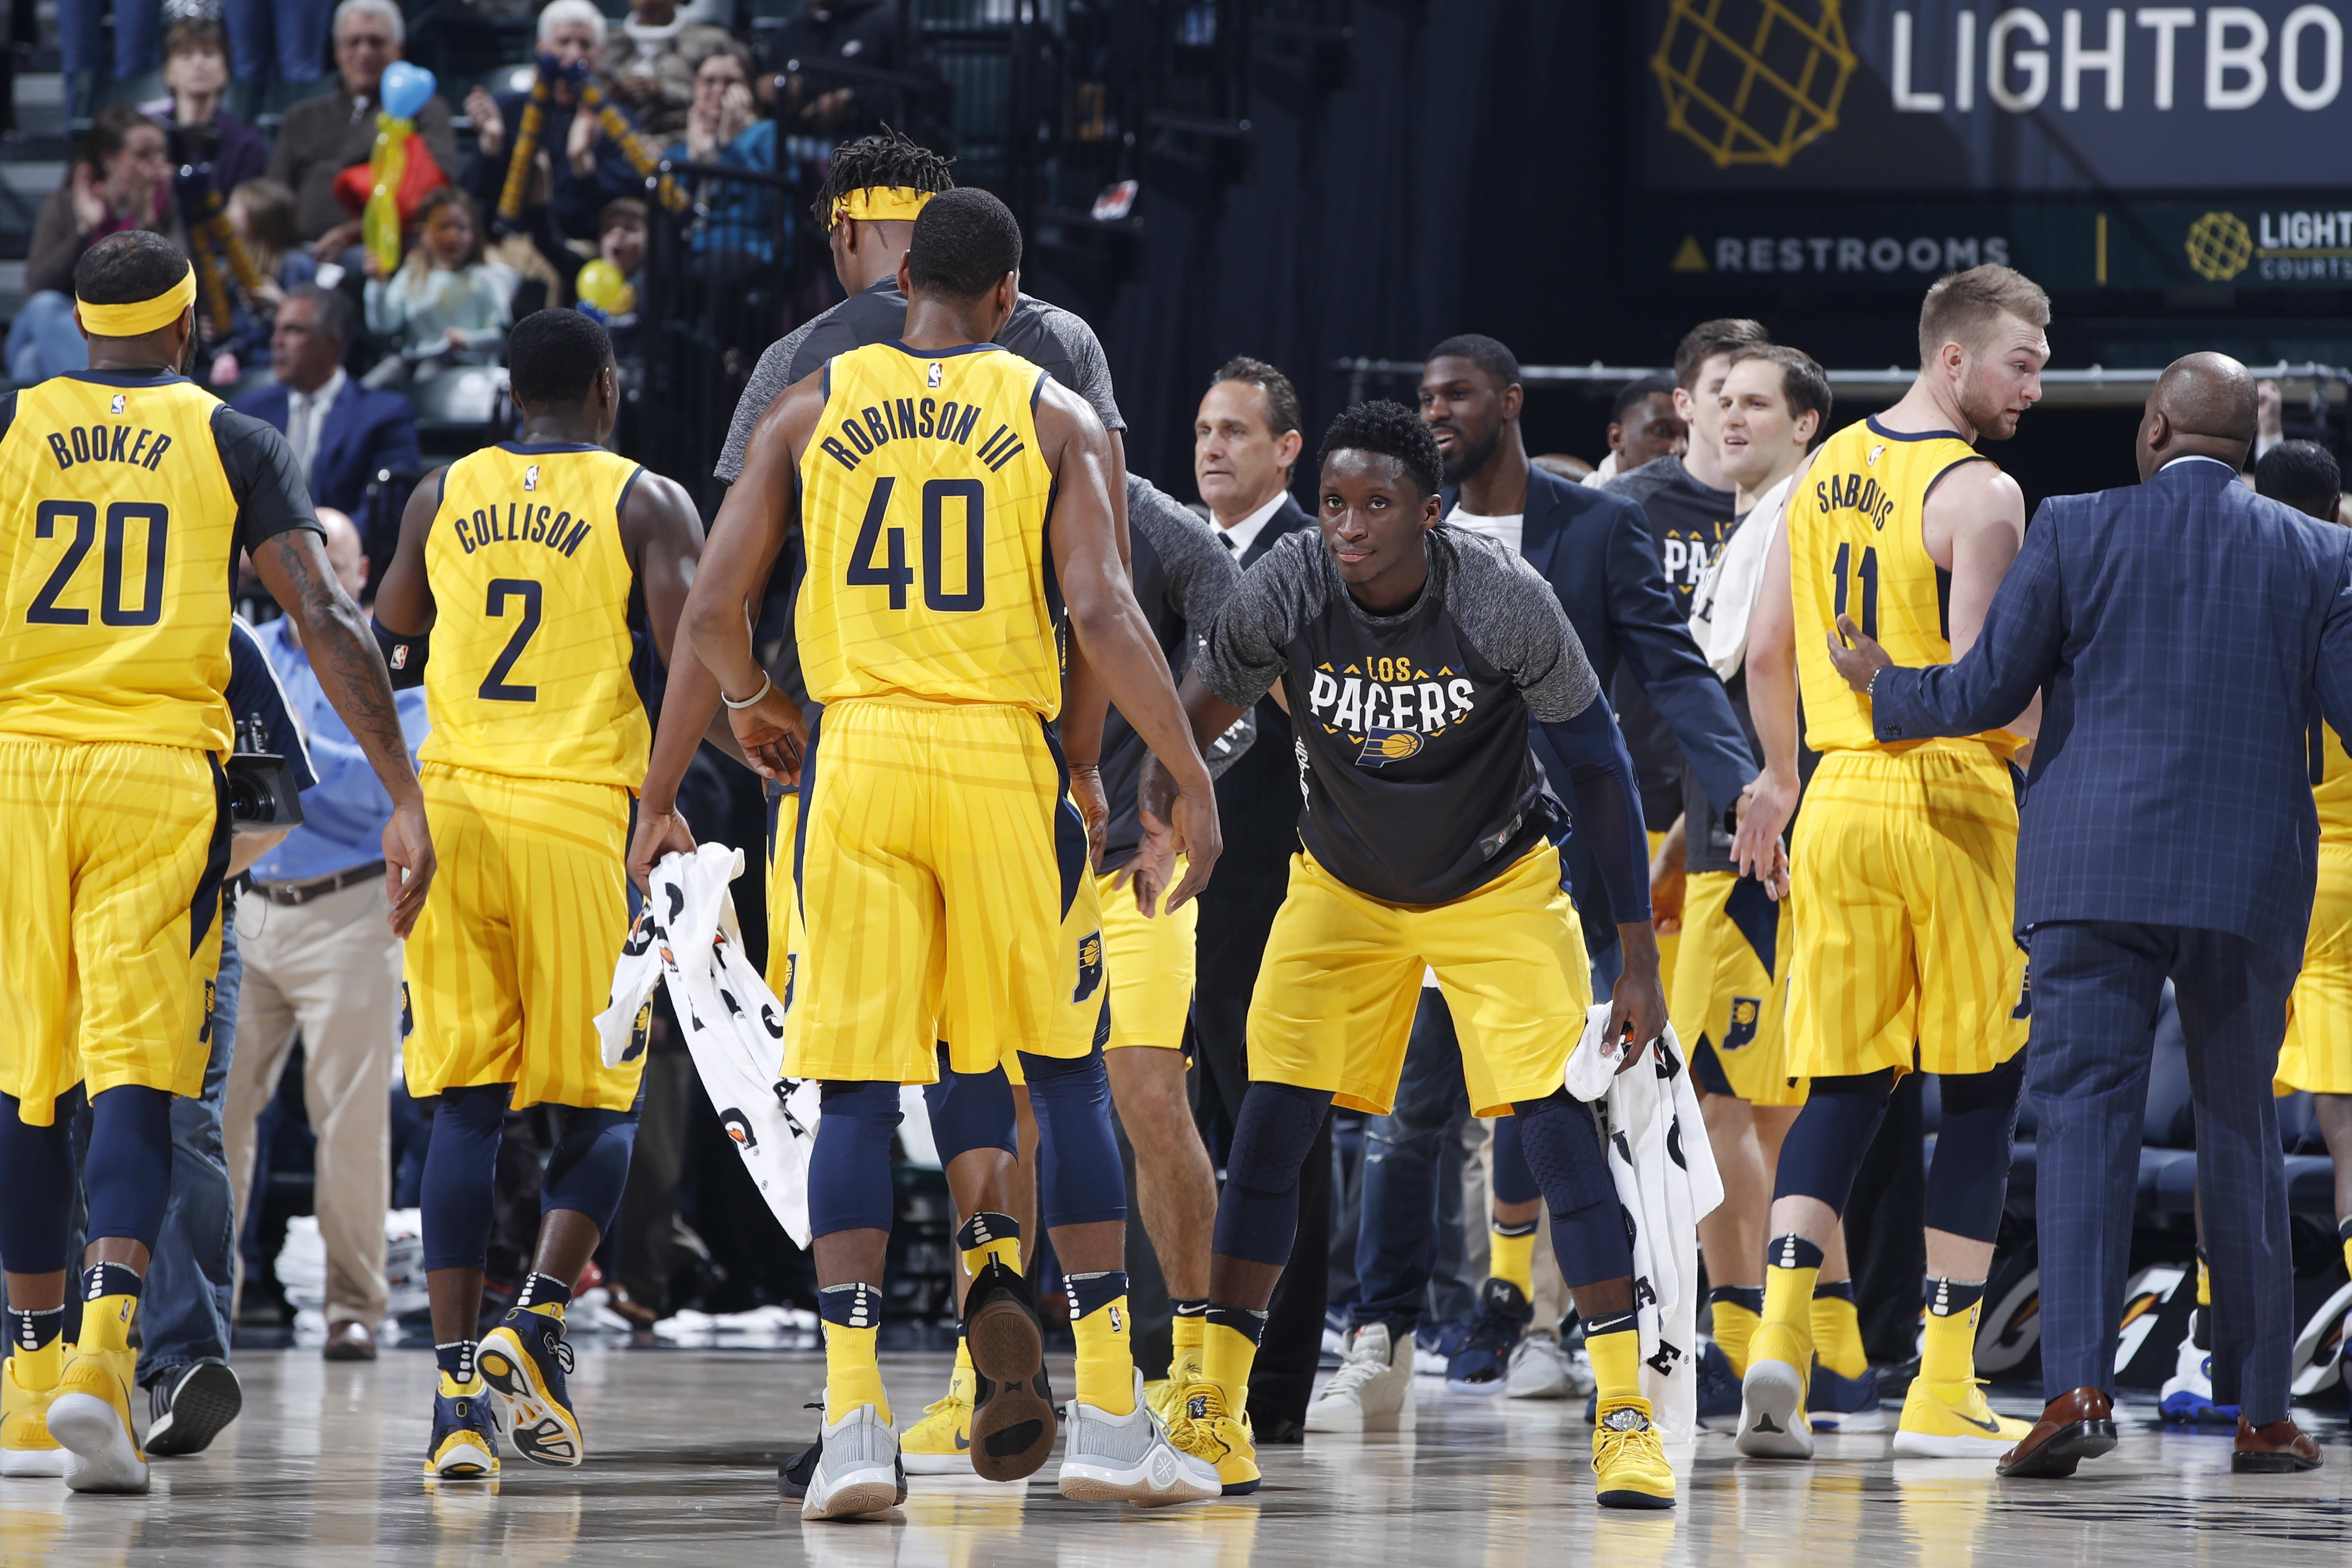 Indiana Pacers schedule is tough down the stretch